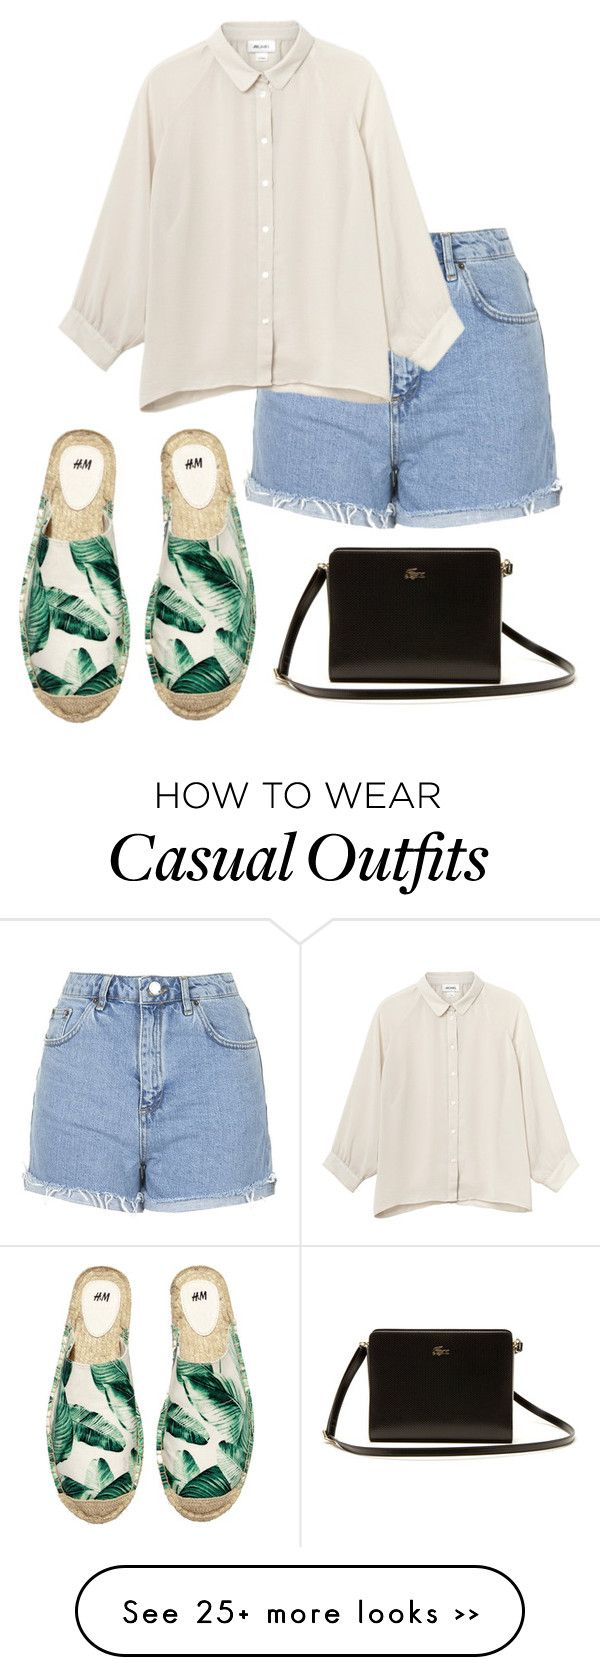 """Outfit of the Day: Casual"" by fashionbloggerwannabe on Polyvore"